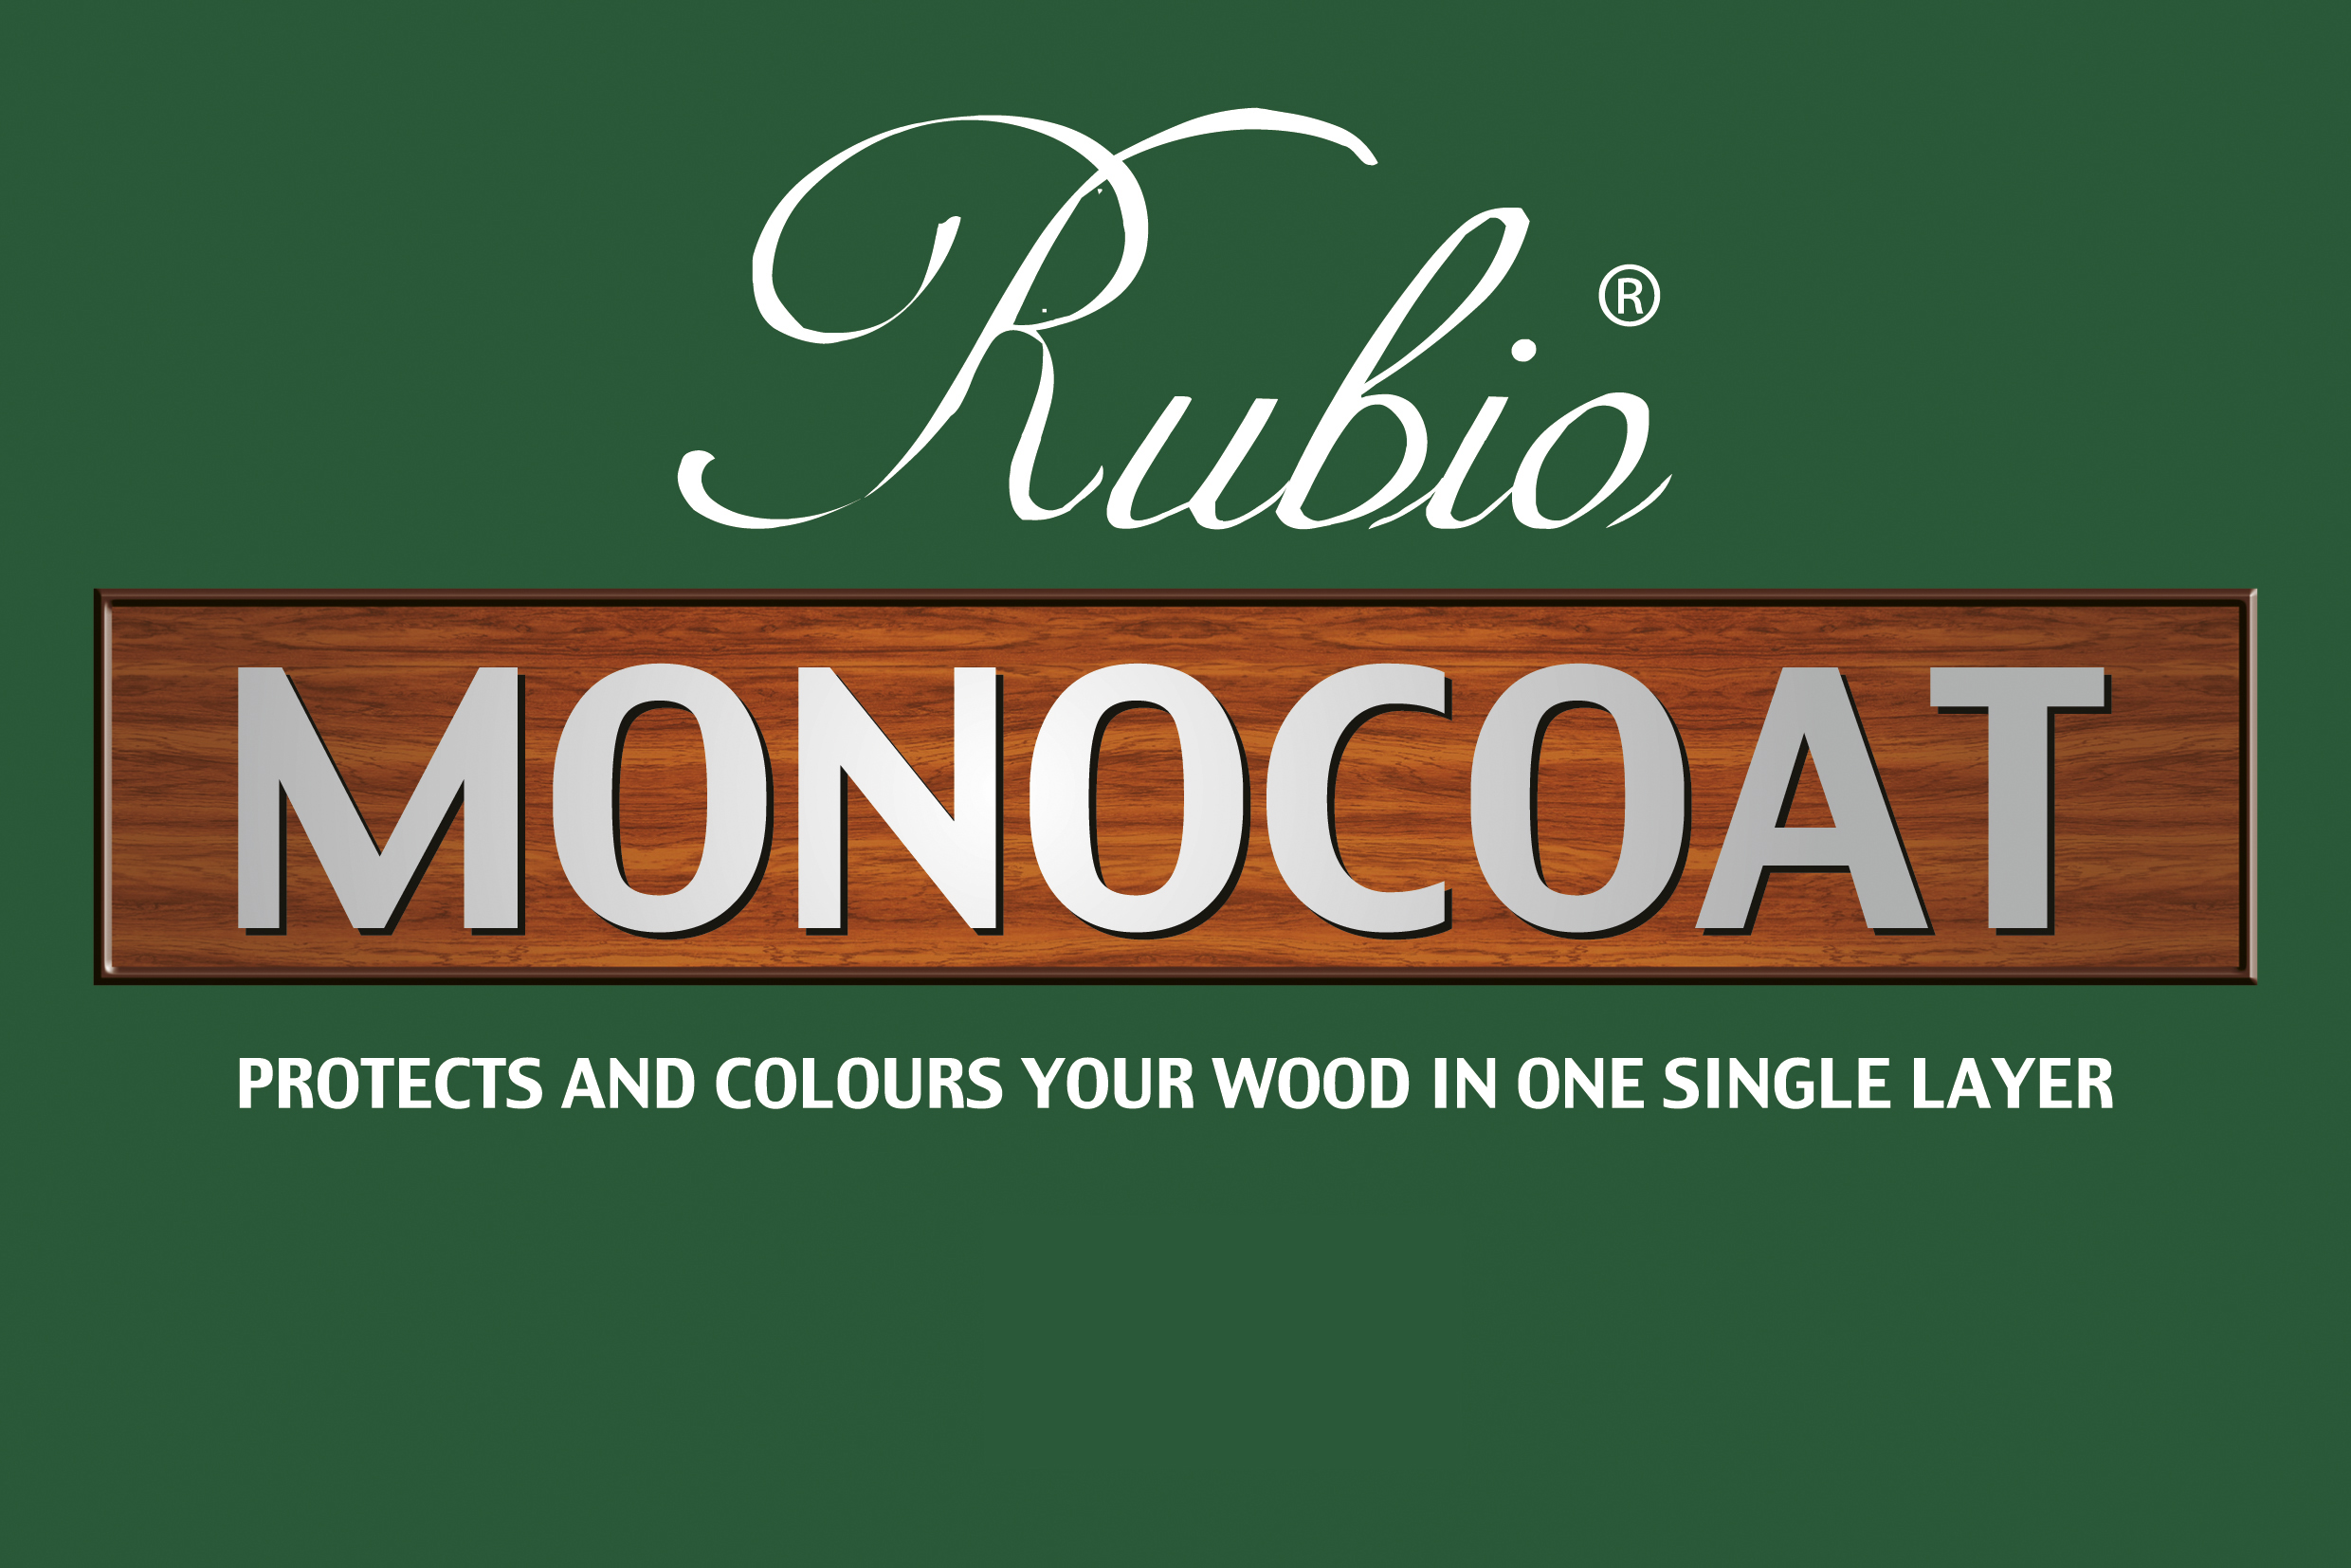 rubio-monocoat-logo